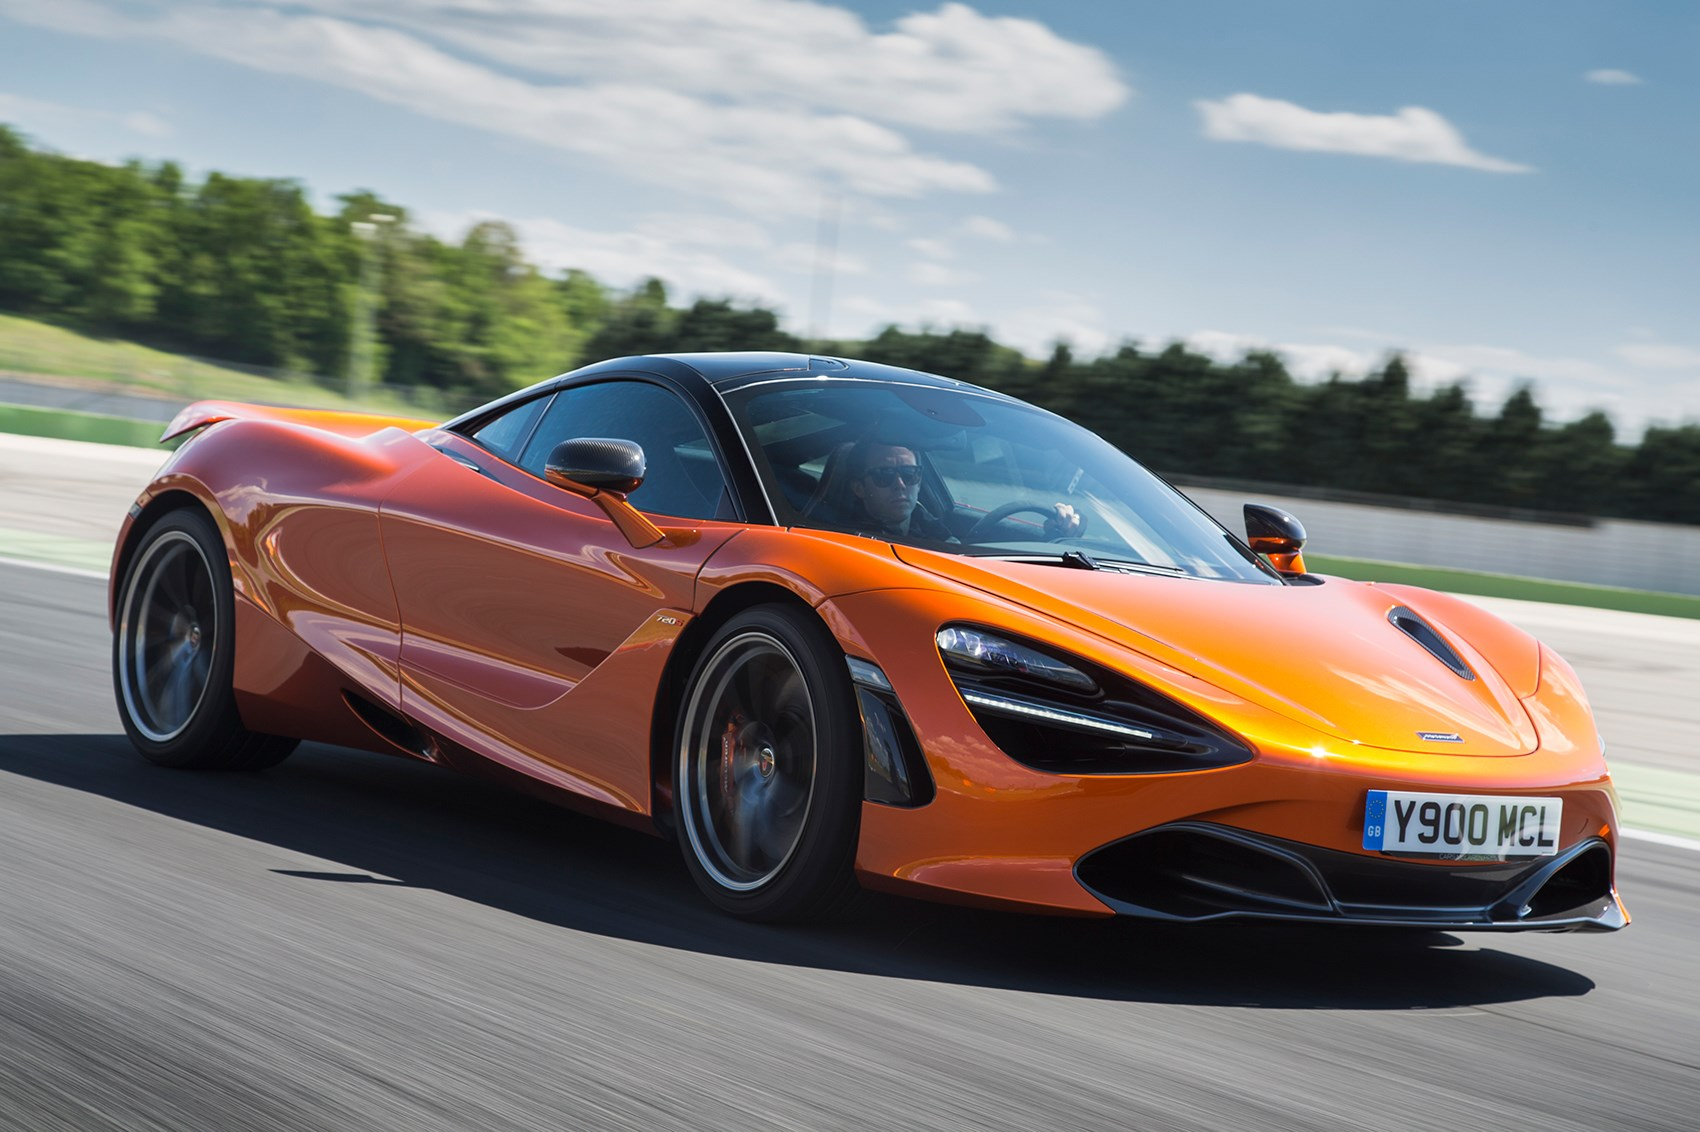 Mclaren 720s Reviewed By A Regular Driver More Ali G Than